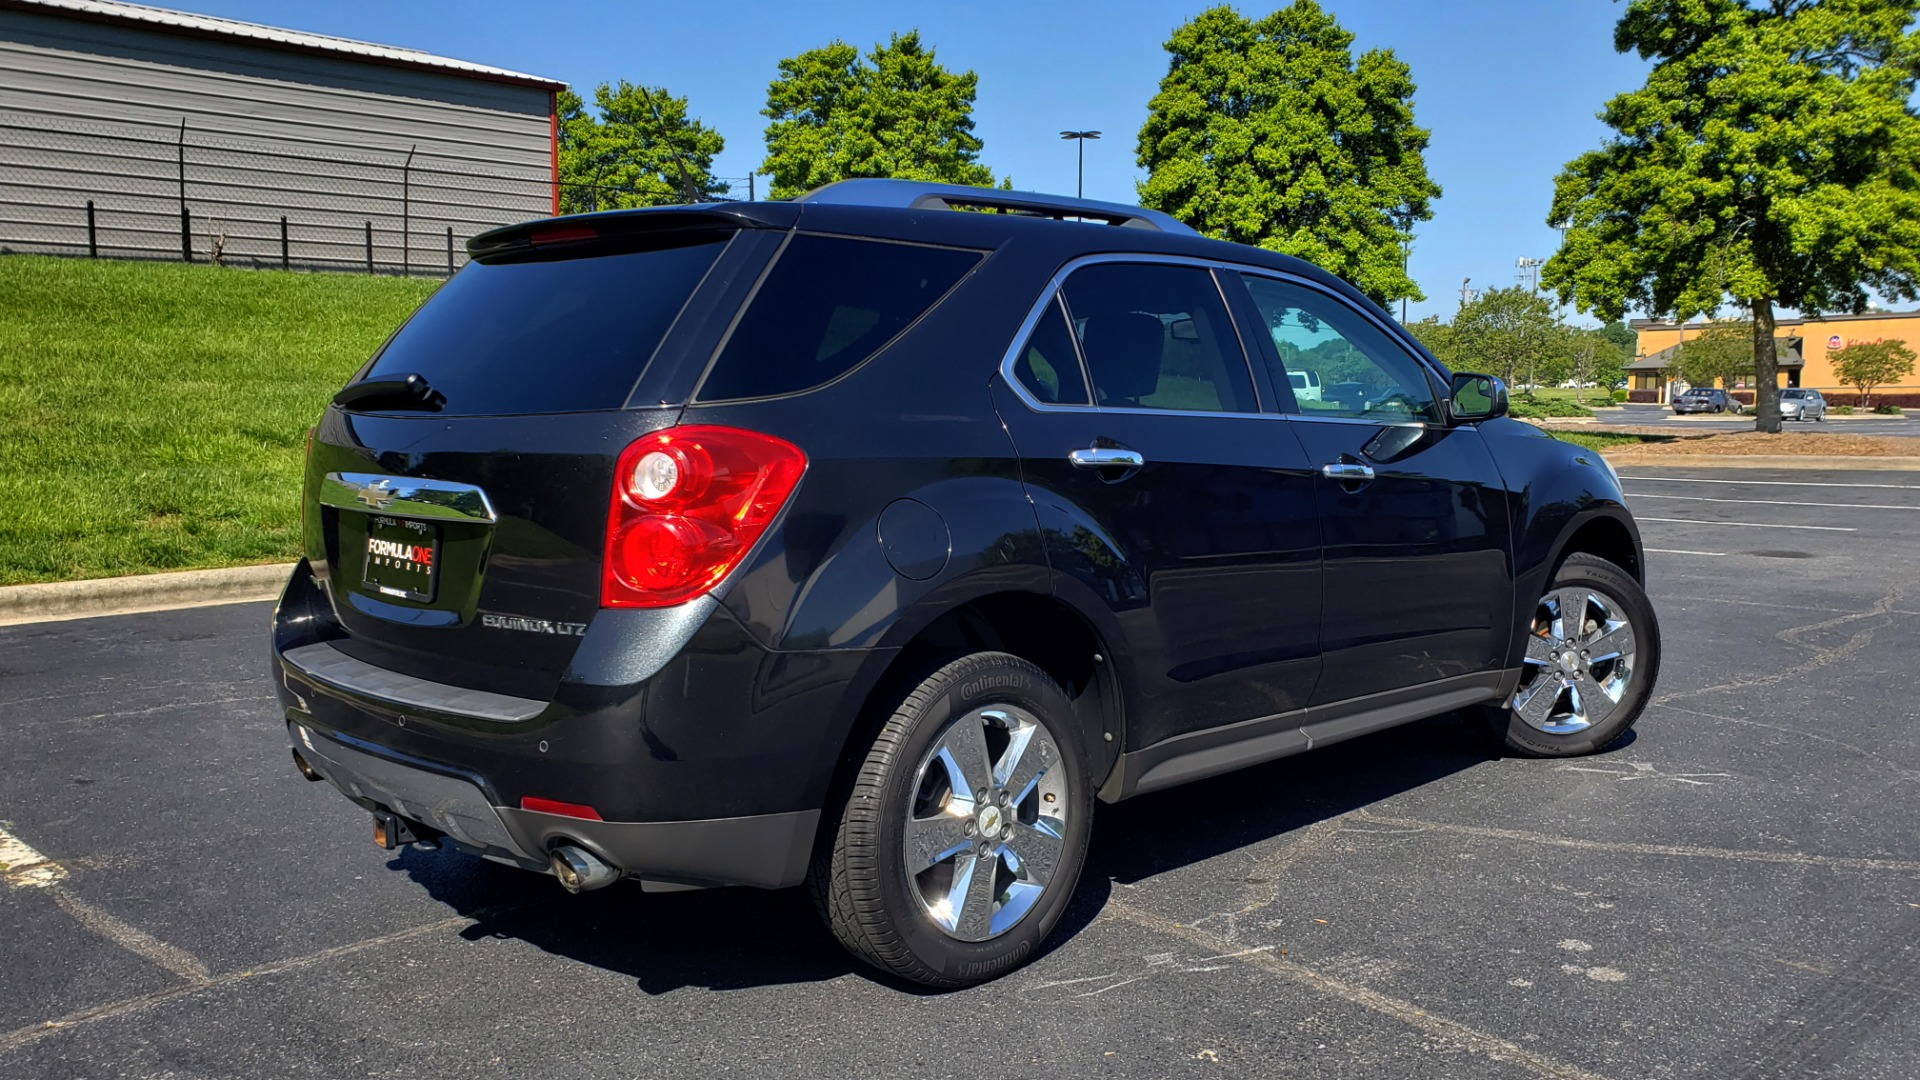 Used 2012 Chevrolet EQUINOX LTZ / FWD / 3.0L V6 / NAV / SUNROOF / PIONEER SND / REARVIEW for sale Sold at Formula Imports in Charlotte NC 28227 6